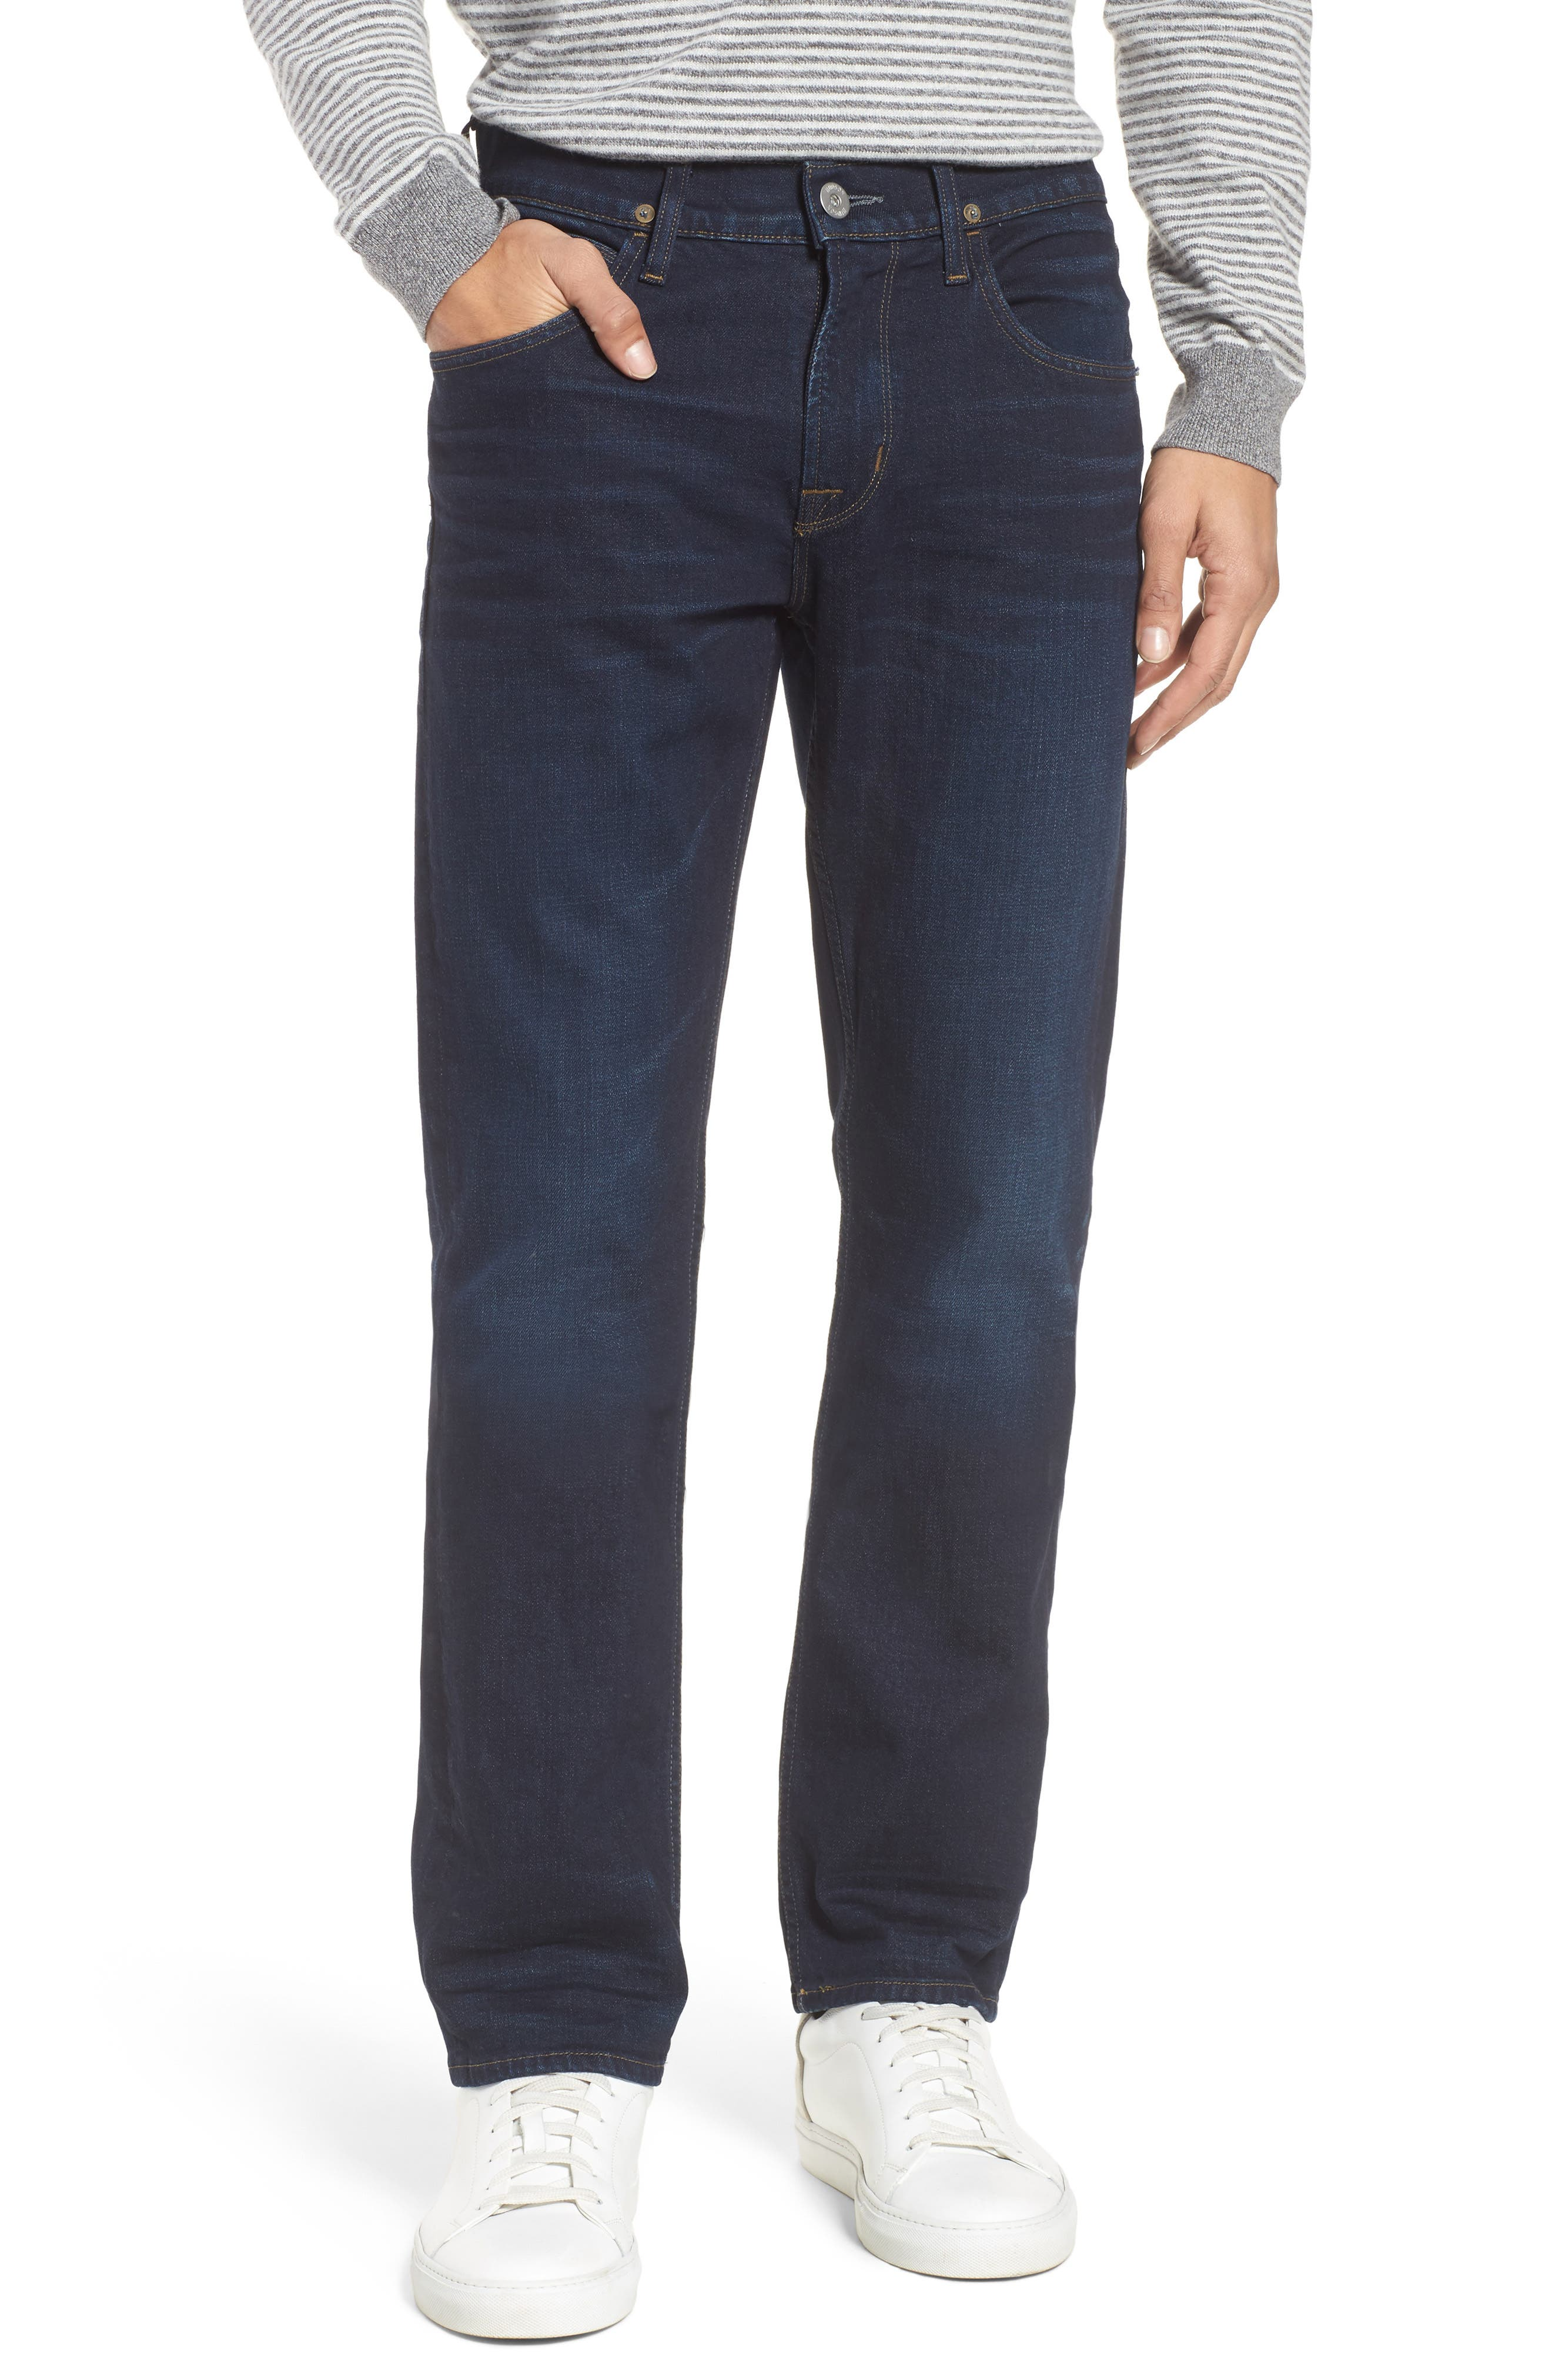 Byron Slim Straight Fit Jeans,                             Main thumbnail 1, color,                             405